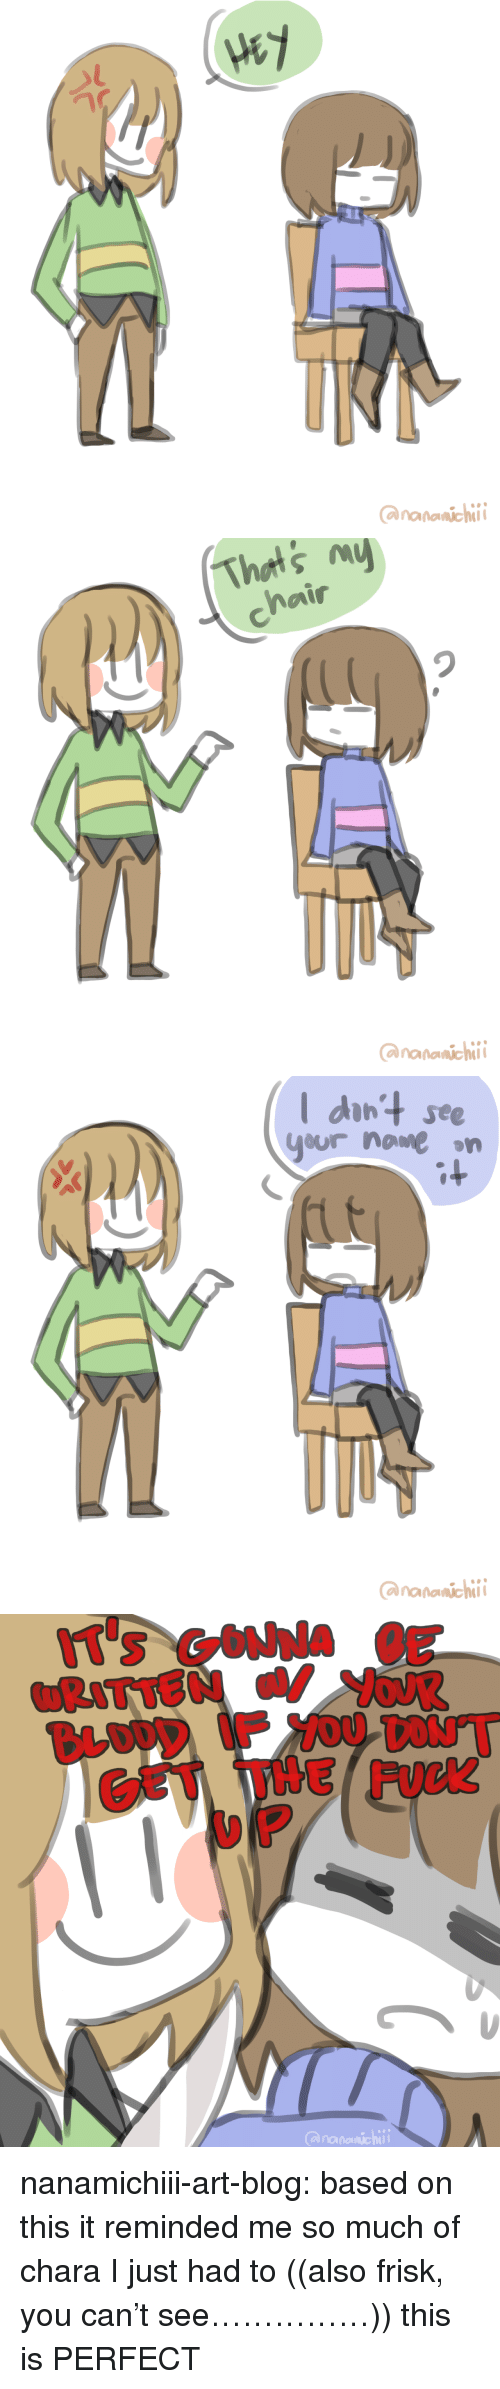 Facebook, Target, and Tumblr: ananaichi   I dan'+ see  yur name on  ananaichi   CET THE FUCK  anananichi nanamichiii-art-blog:  based on this it reminded me so much of chara I just had to  ((also frisk, you can't see……………))   this is PERFECT